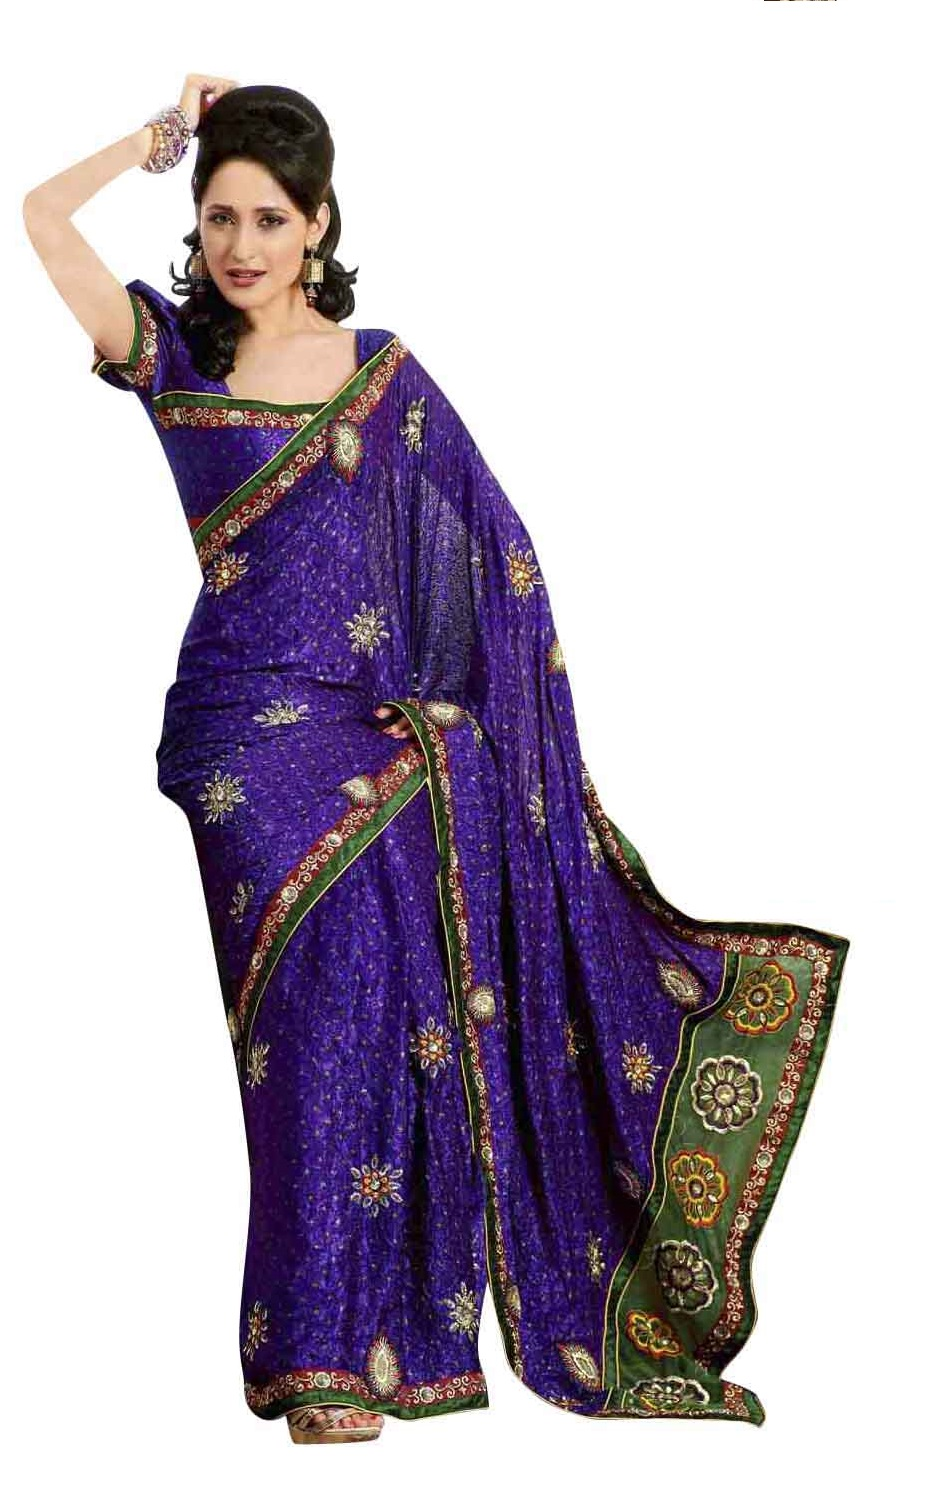 Indian Selections Deepal Deep Purple Faux Crepe Luxury Party Wear Sari saree at Sears.com